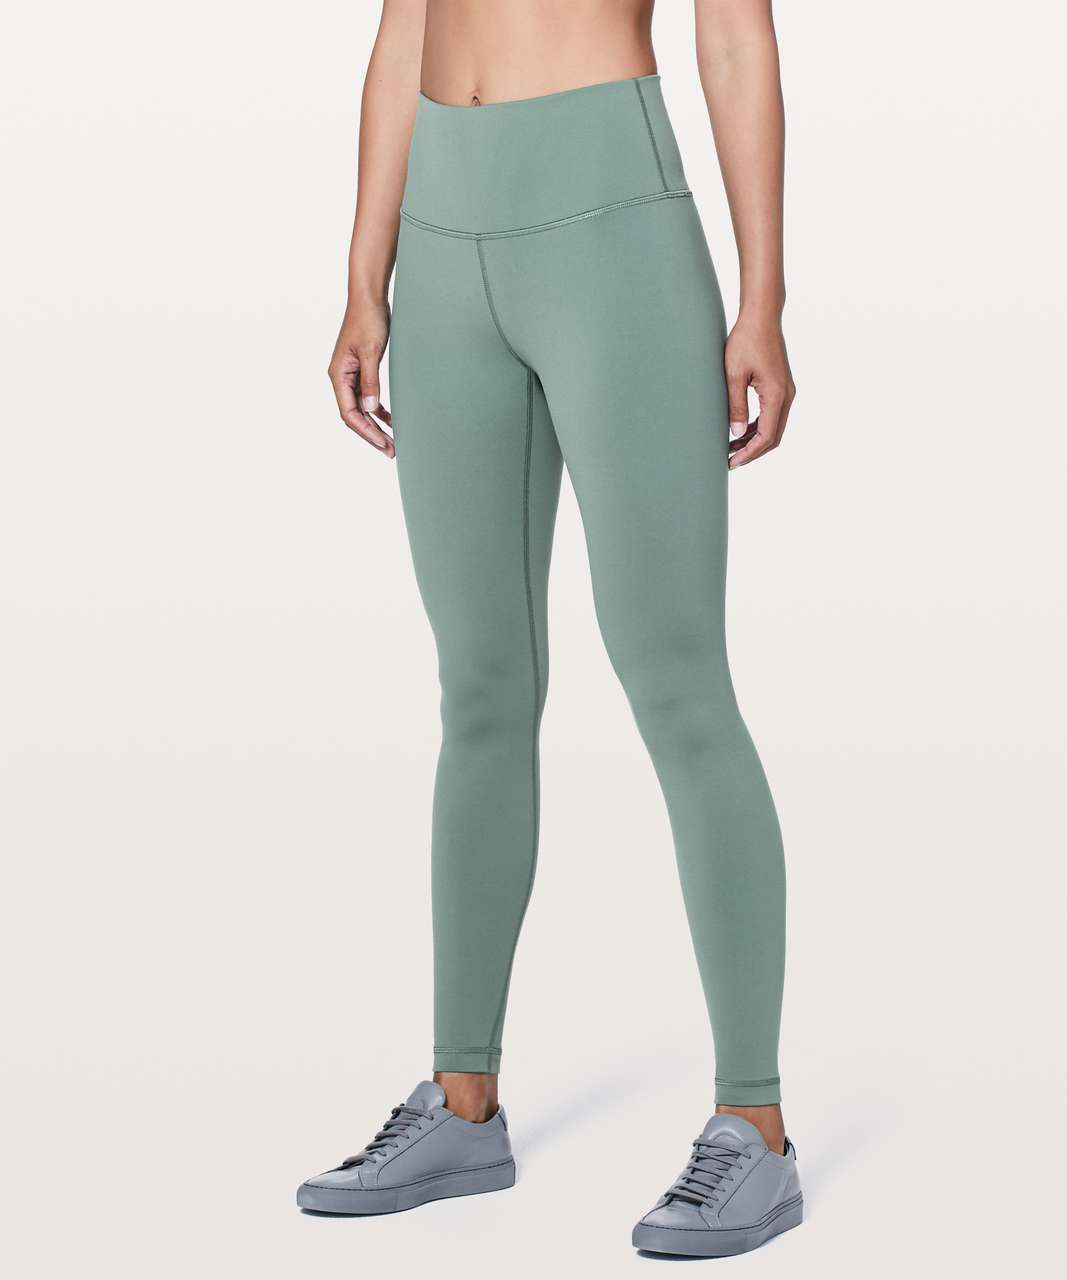 "Lululemon Wunder Under Hi-Rise Tight *28"" - Juniper"